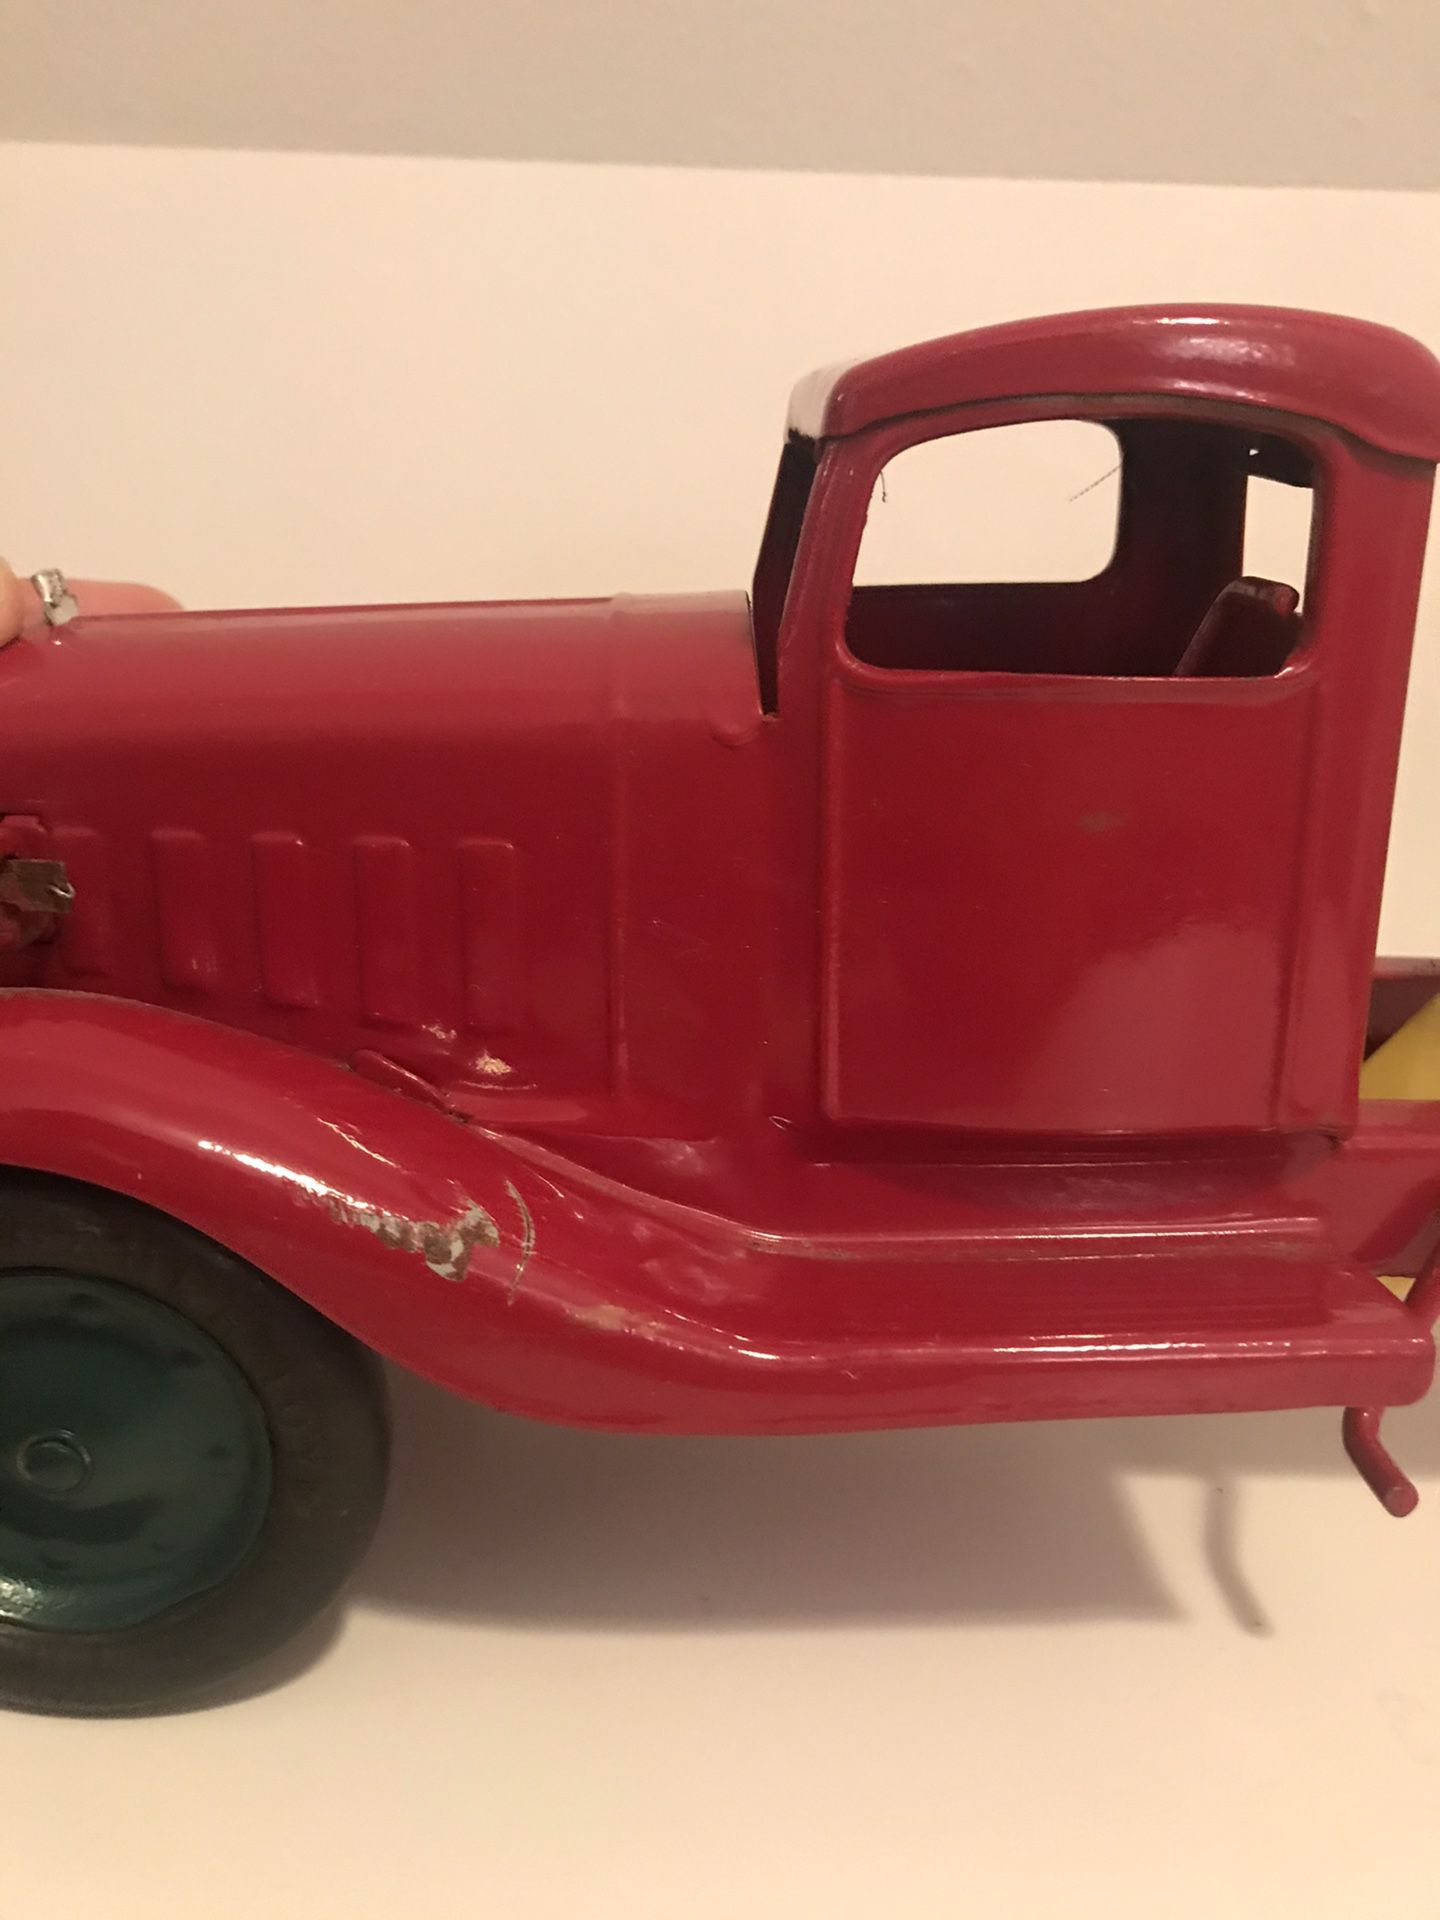 Vintage and Rare Turner Toys Pressed Metal Red and Yellow Dump Truck with Battery Slot for Working Headlights 18in Length 6in Height Normal Wear Rubb